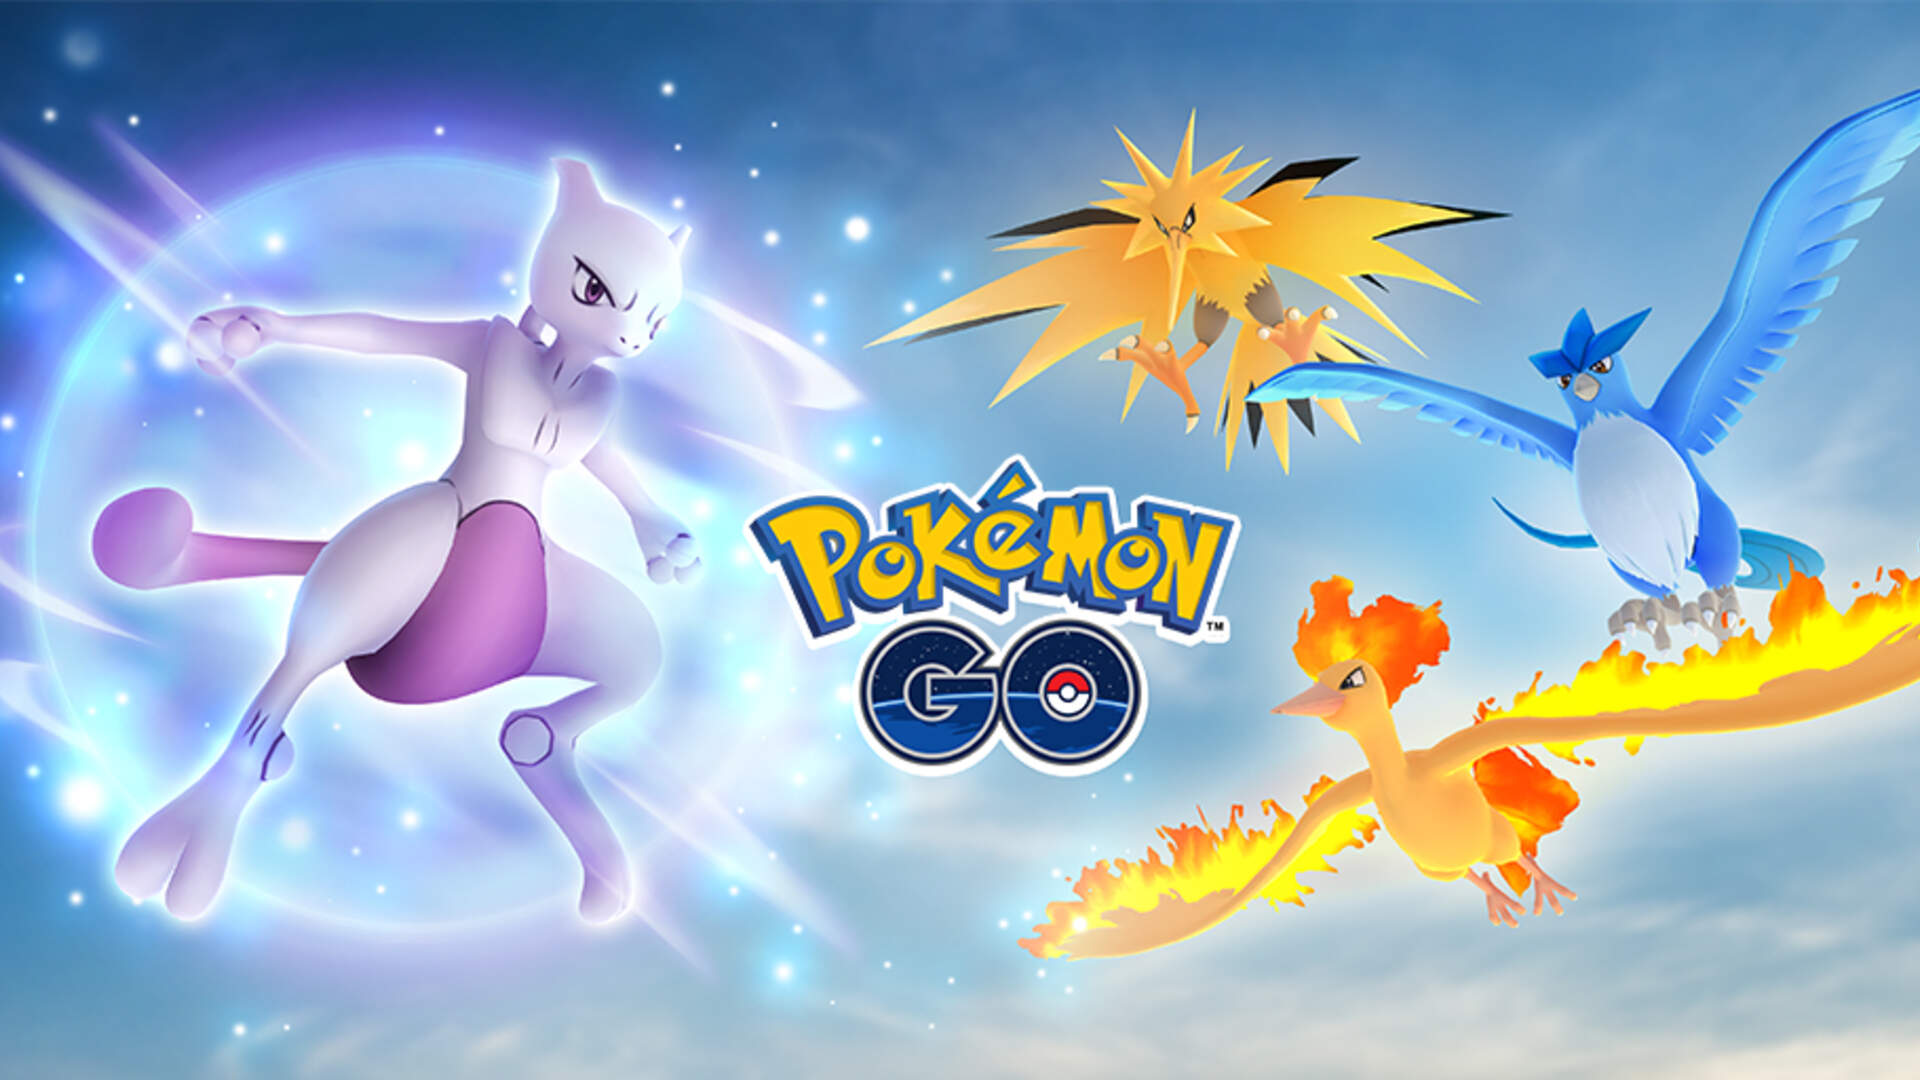 Pokemon Go's Newest Raid is Offering Some of the Most Coveted Legendaries to Date